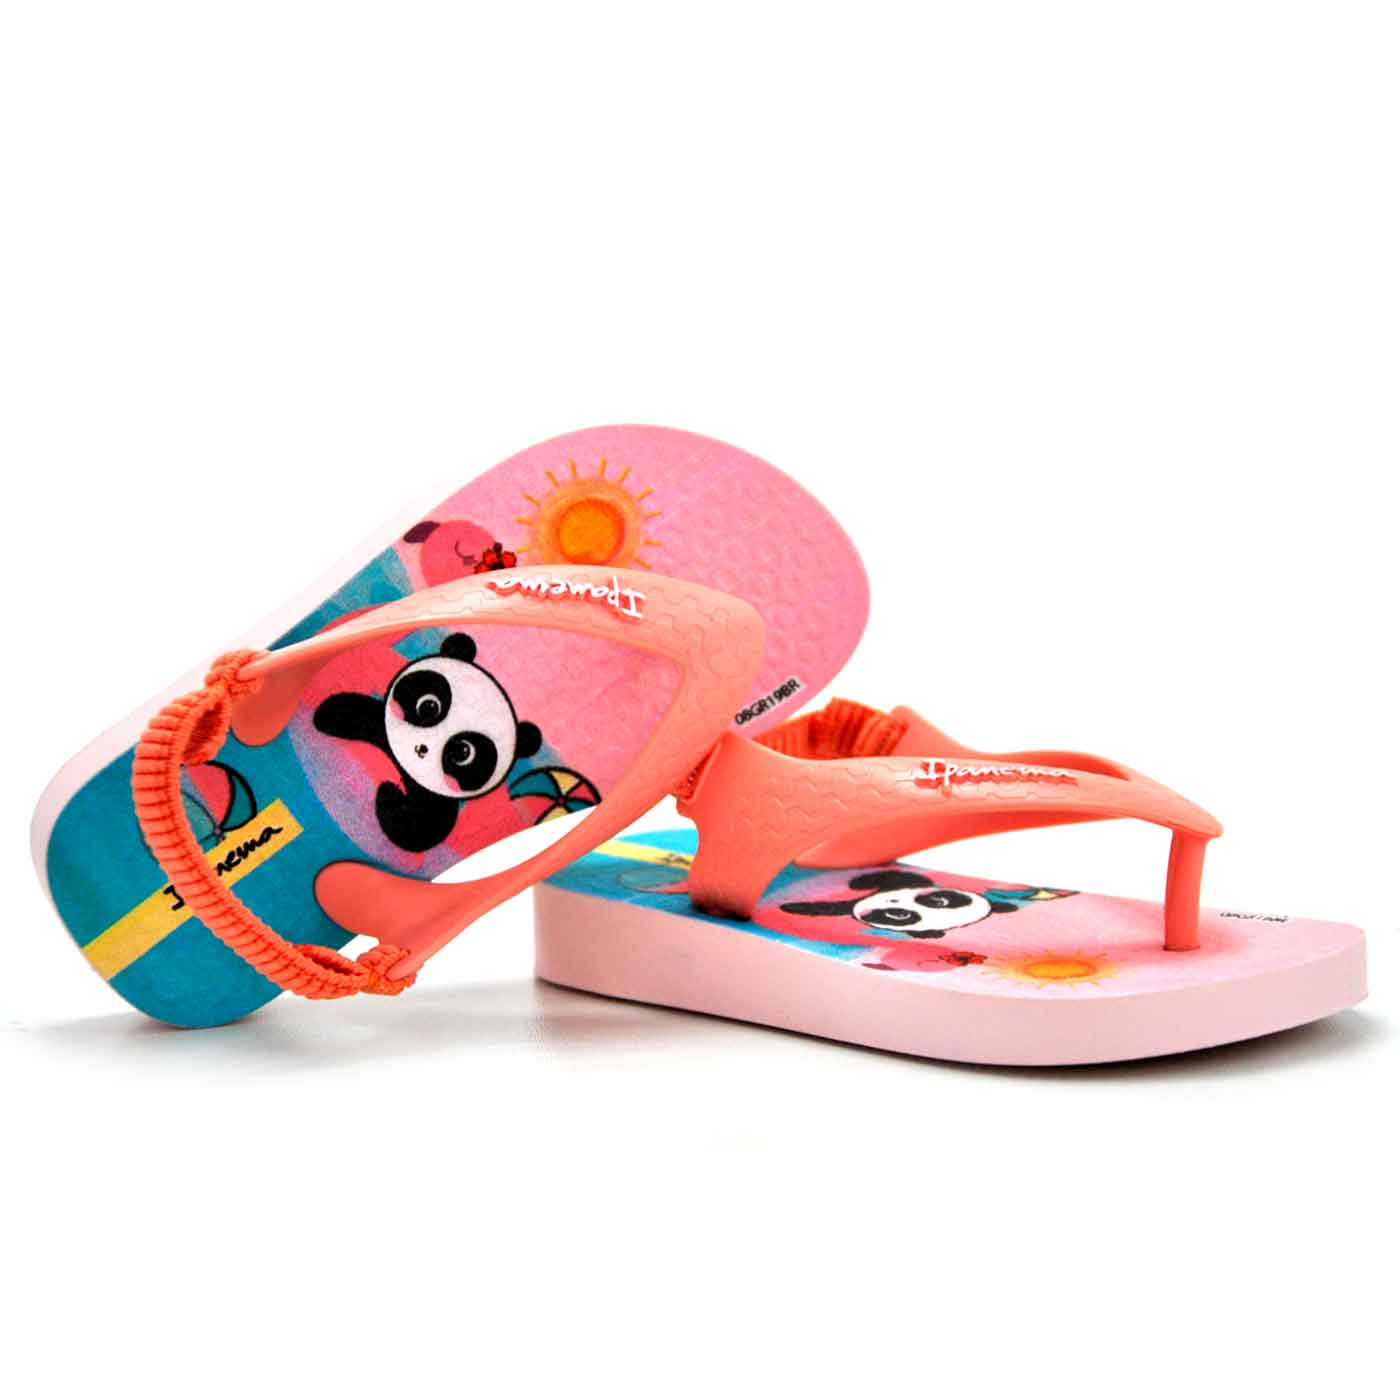 CHINELO IPANEMA BABY ESTAMPADO - 25431